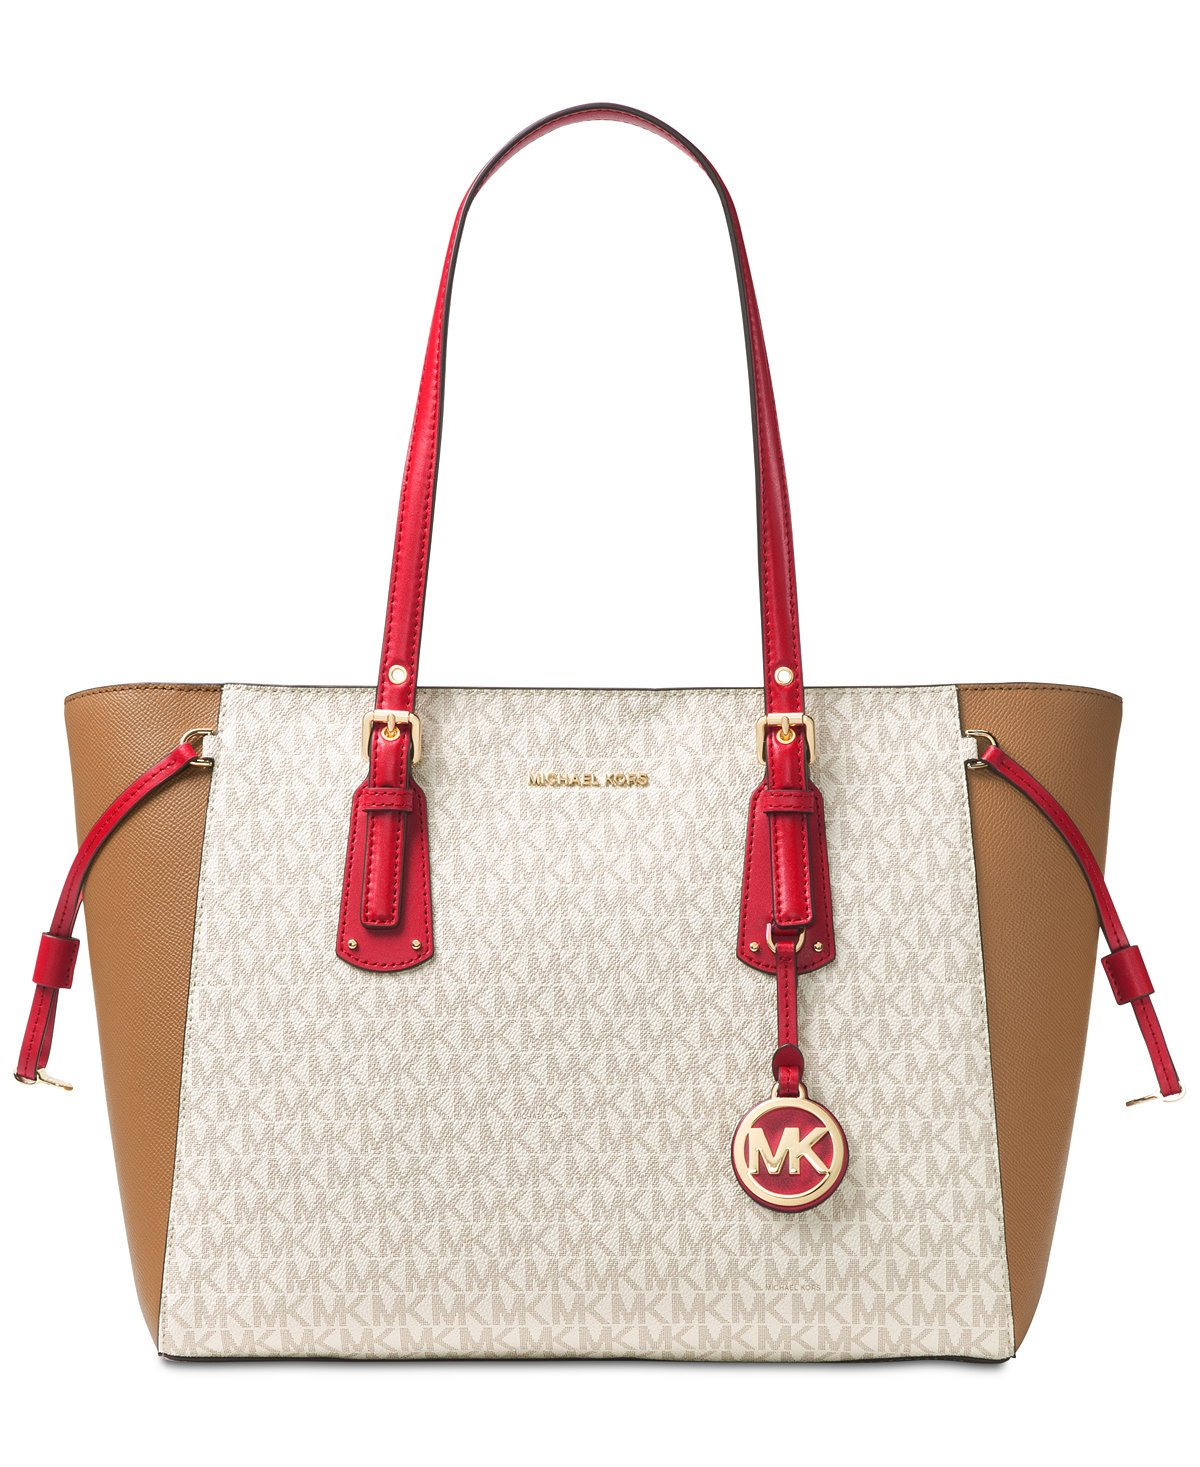 MICHAEL Michael Kors Voyager Multi-Function Top Zip Medium Tote, Vanilla/Acorn/Bright Red